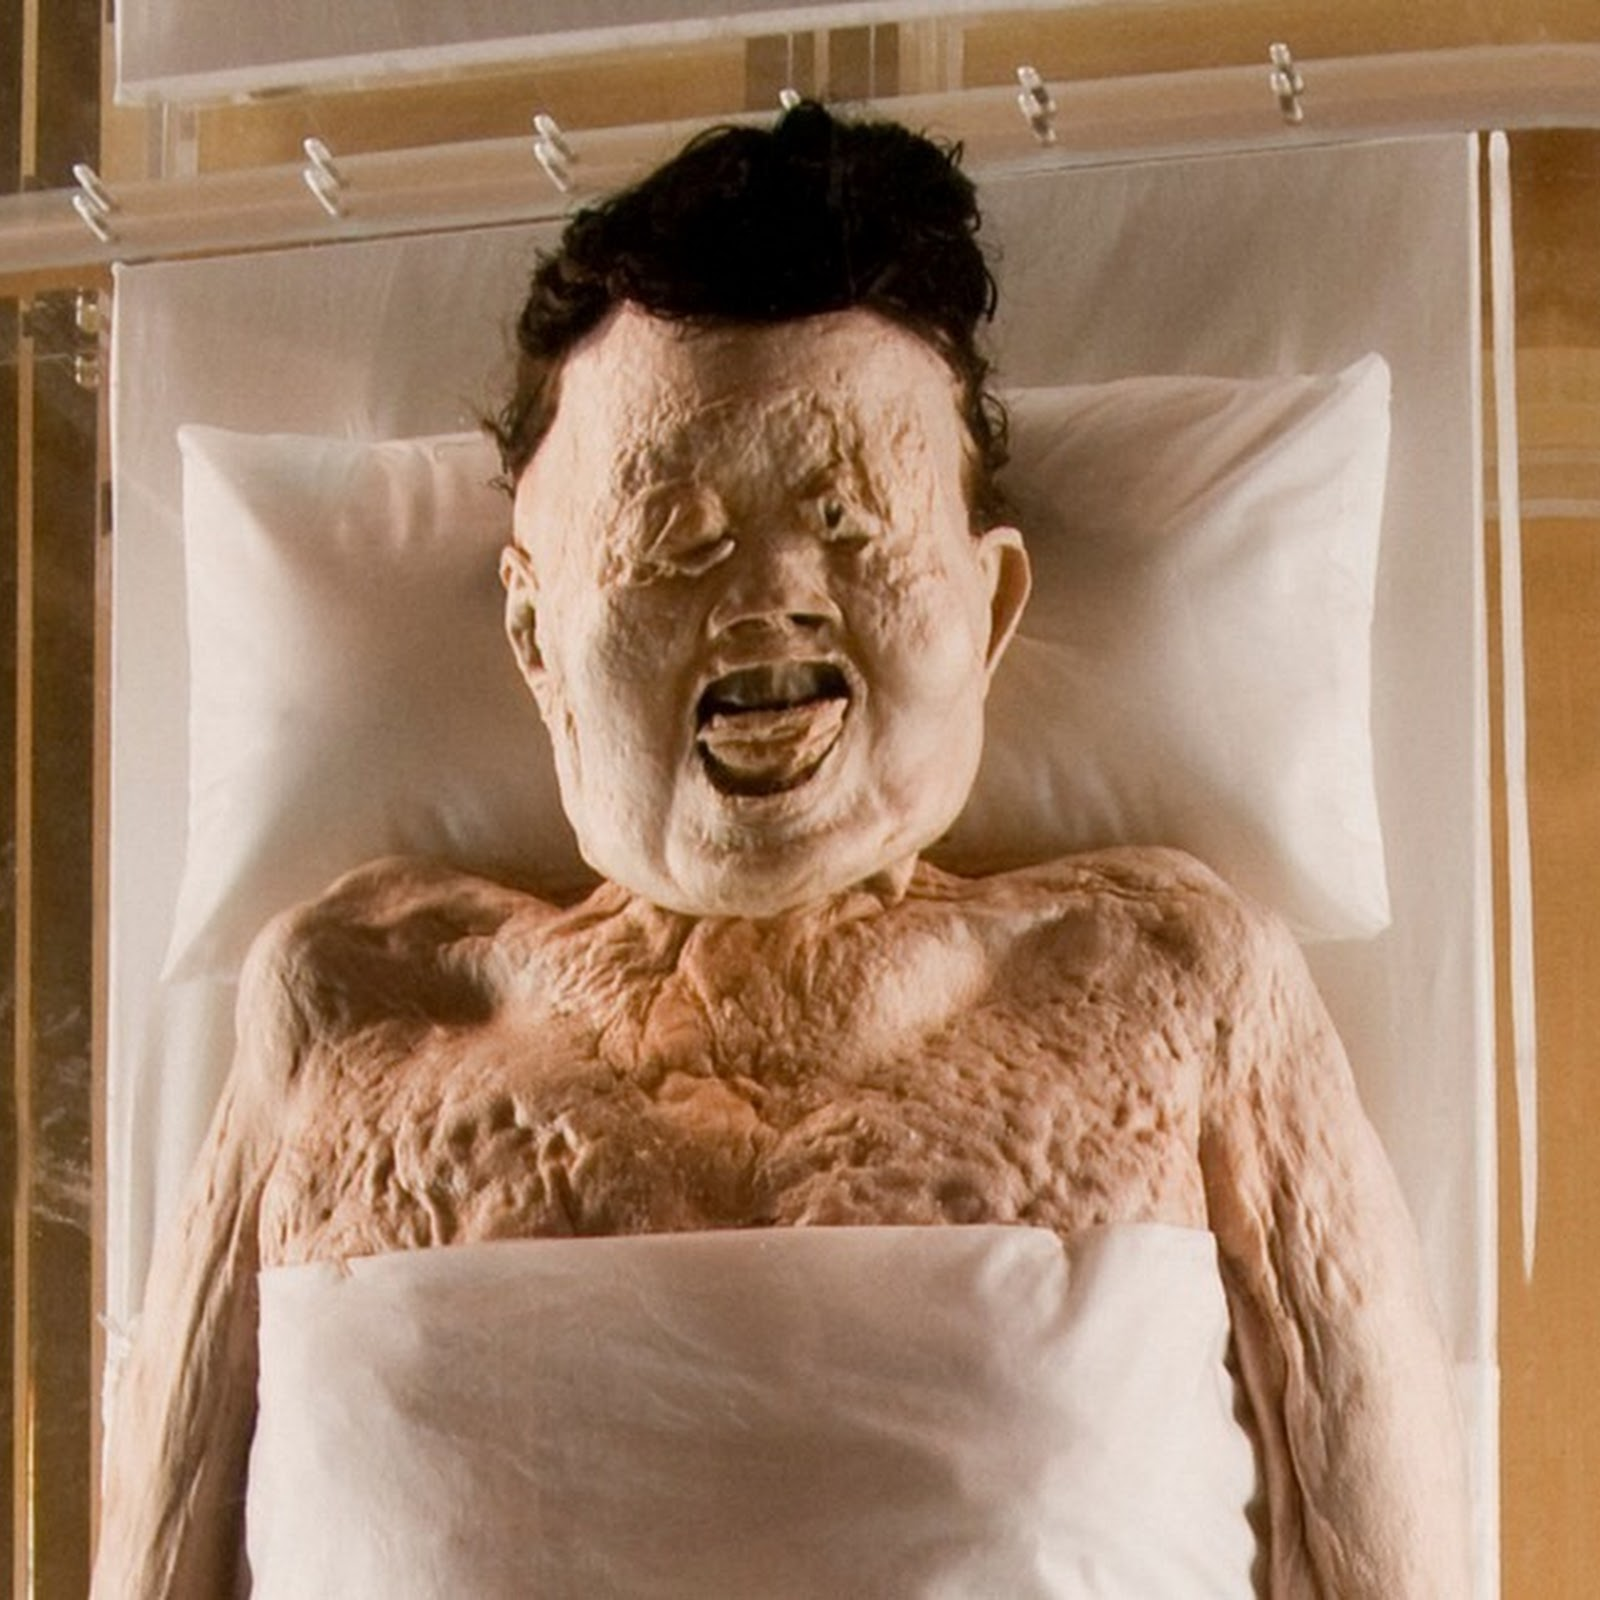 The Mystery of Lady Dai's Preserved Mummy